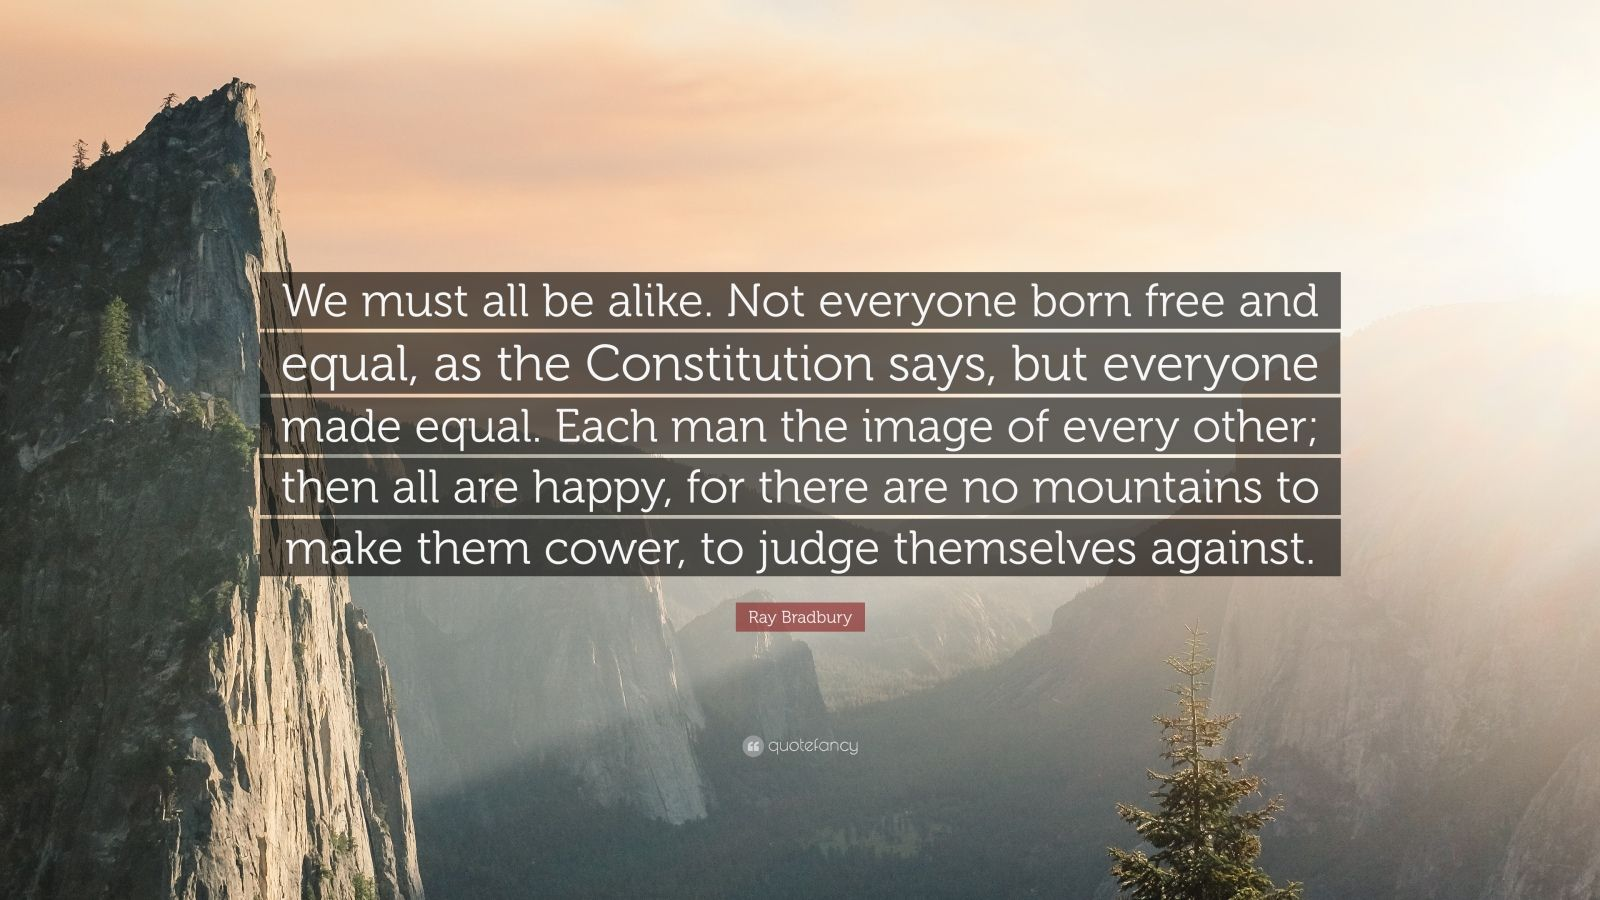 """Ray Bradbury Quote: """"We must all be alike. Not everyone born free and equal, as the Constitution says, but everyone made equal. Each man the image of every other; then all are happy, for there are no mountains to make them cower, to judge themselves against."""""""